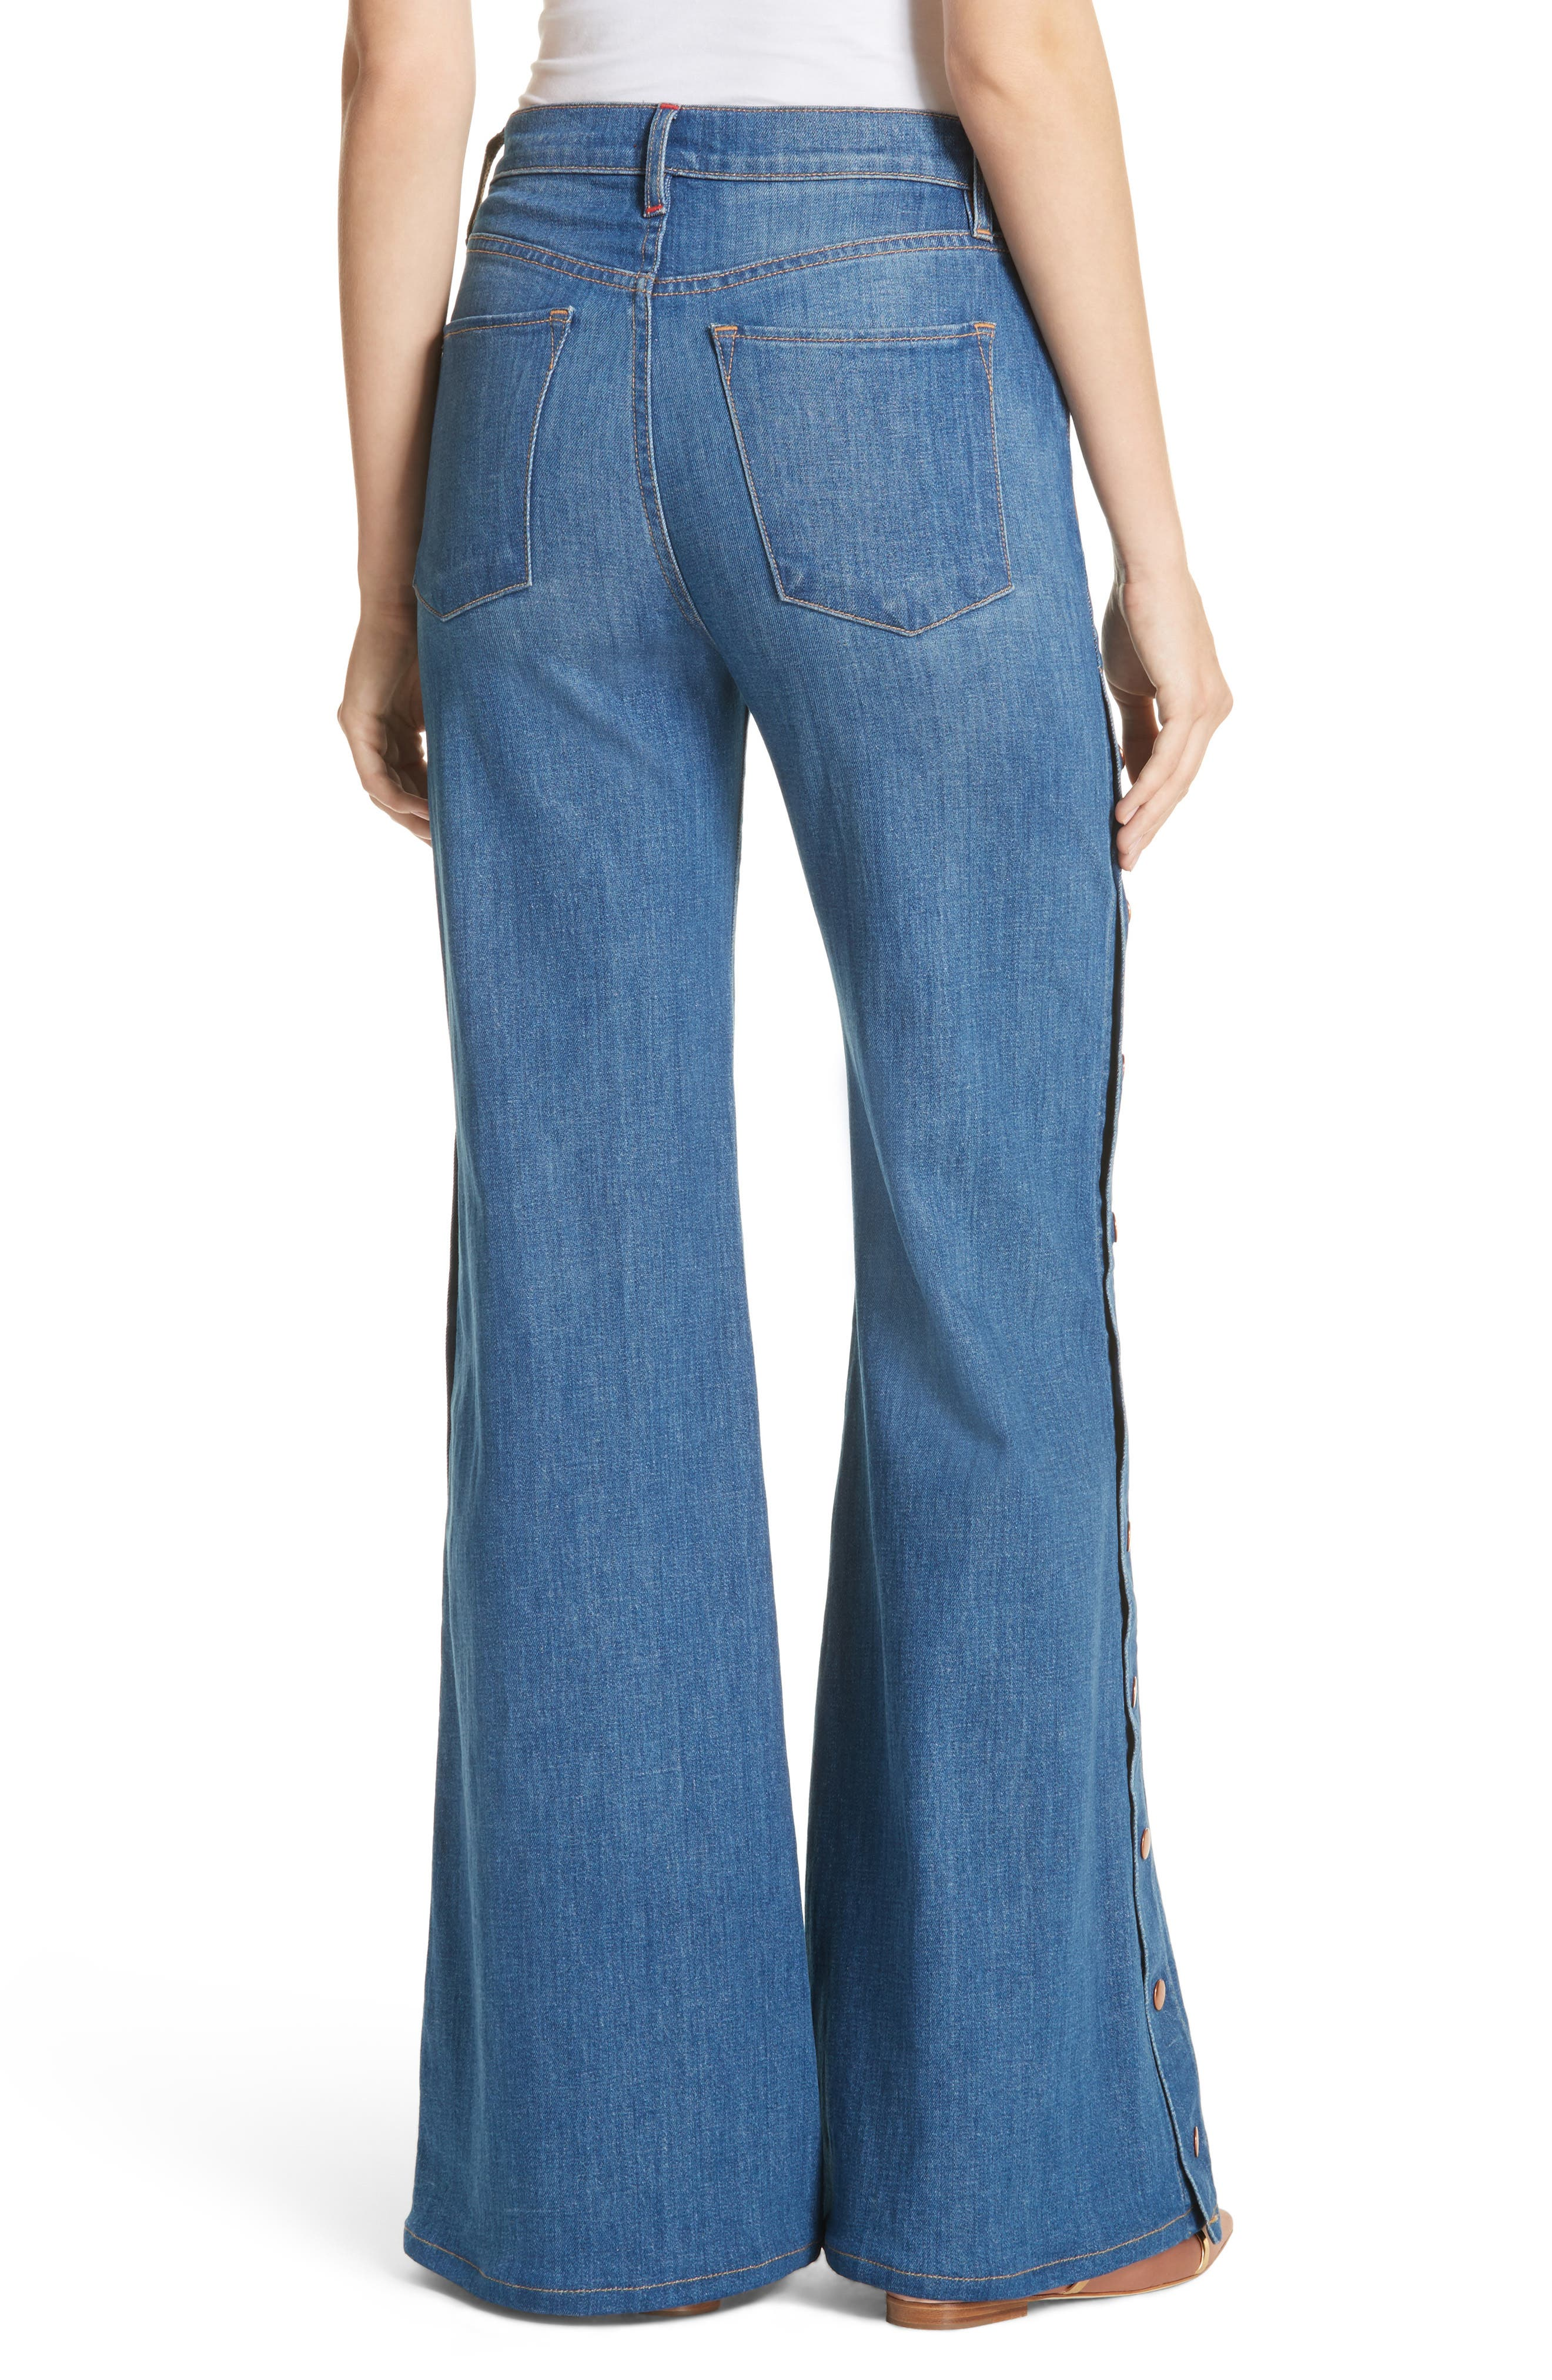 AO.LA Gorgeous Snap Side Flare Leg Jeans,                             Alternate thumbnail 2, color,                             460